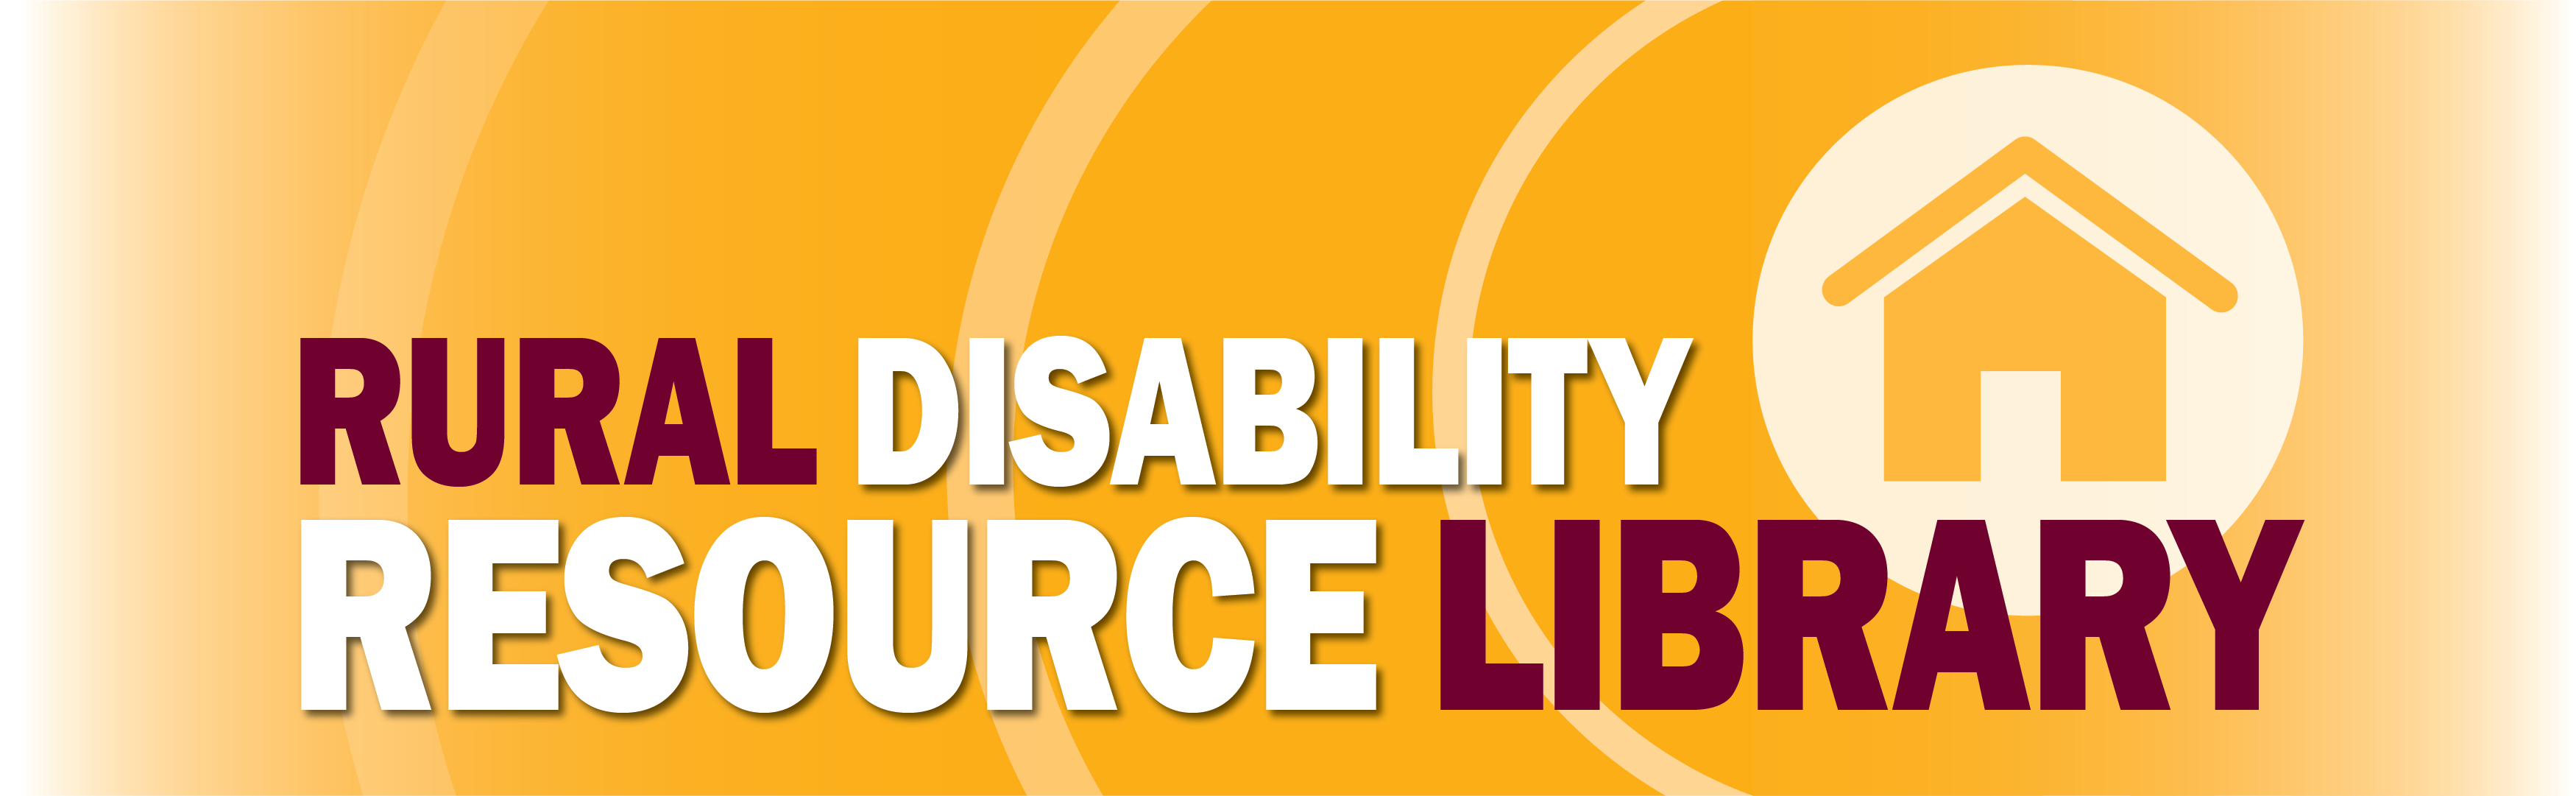 Rural Disability Resource Library